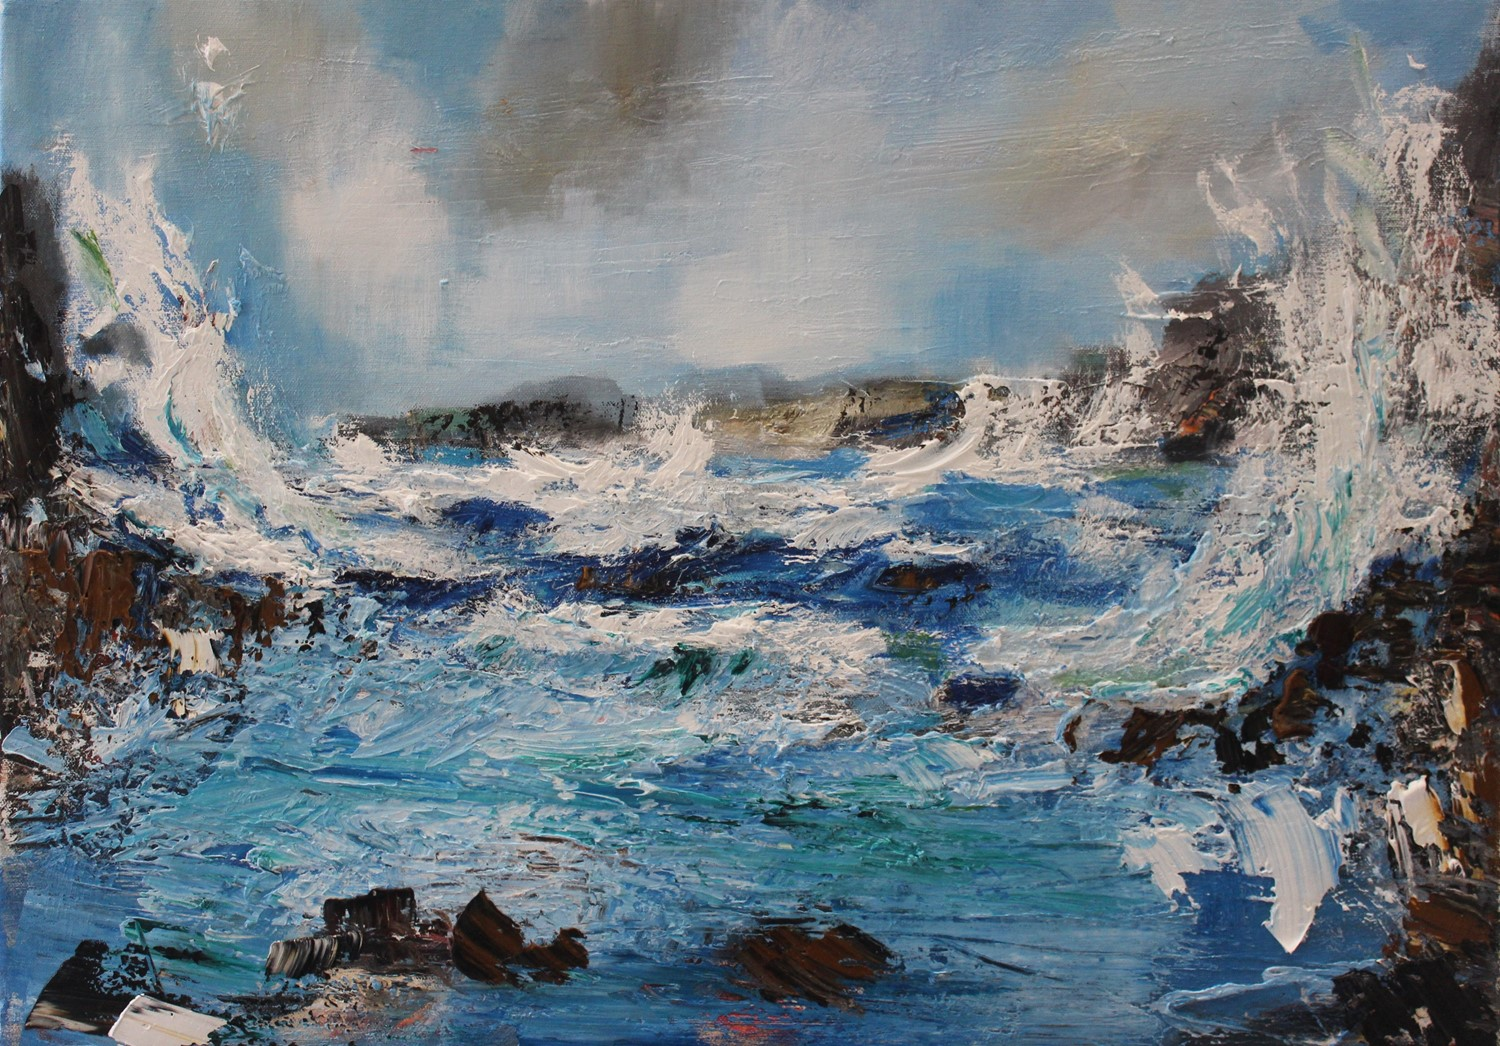 'It's Blowing a Gale' by artist Rosanne Barr